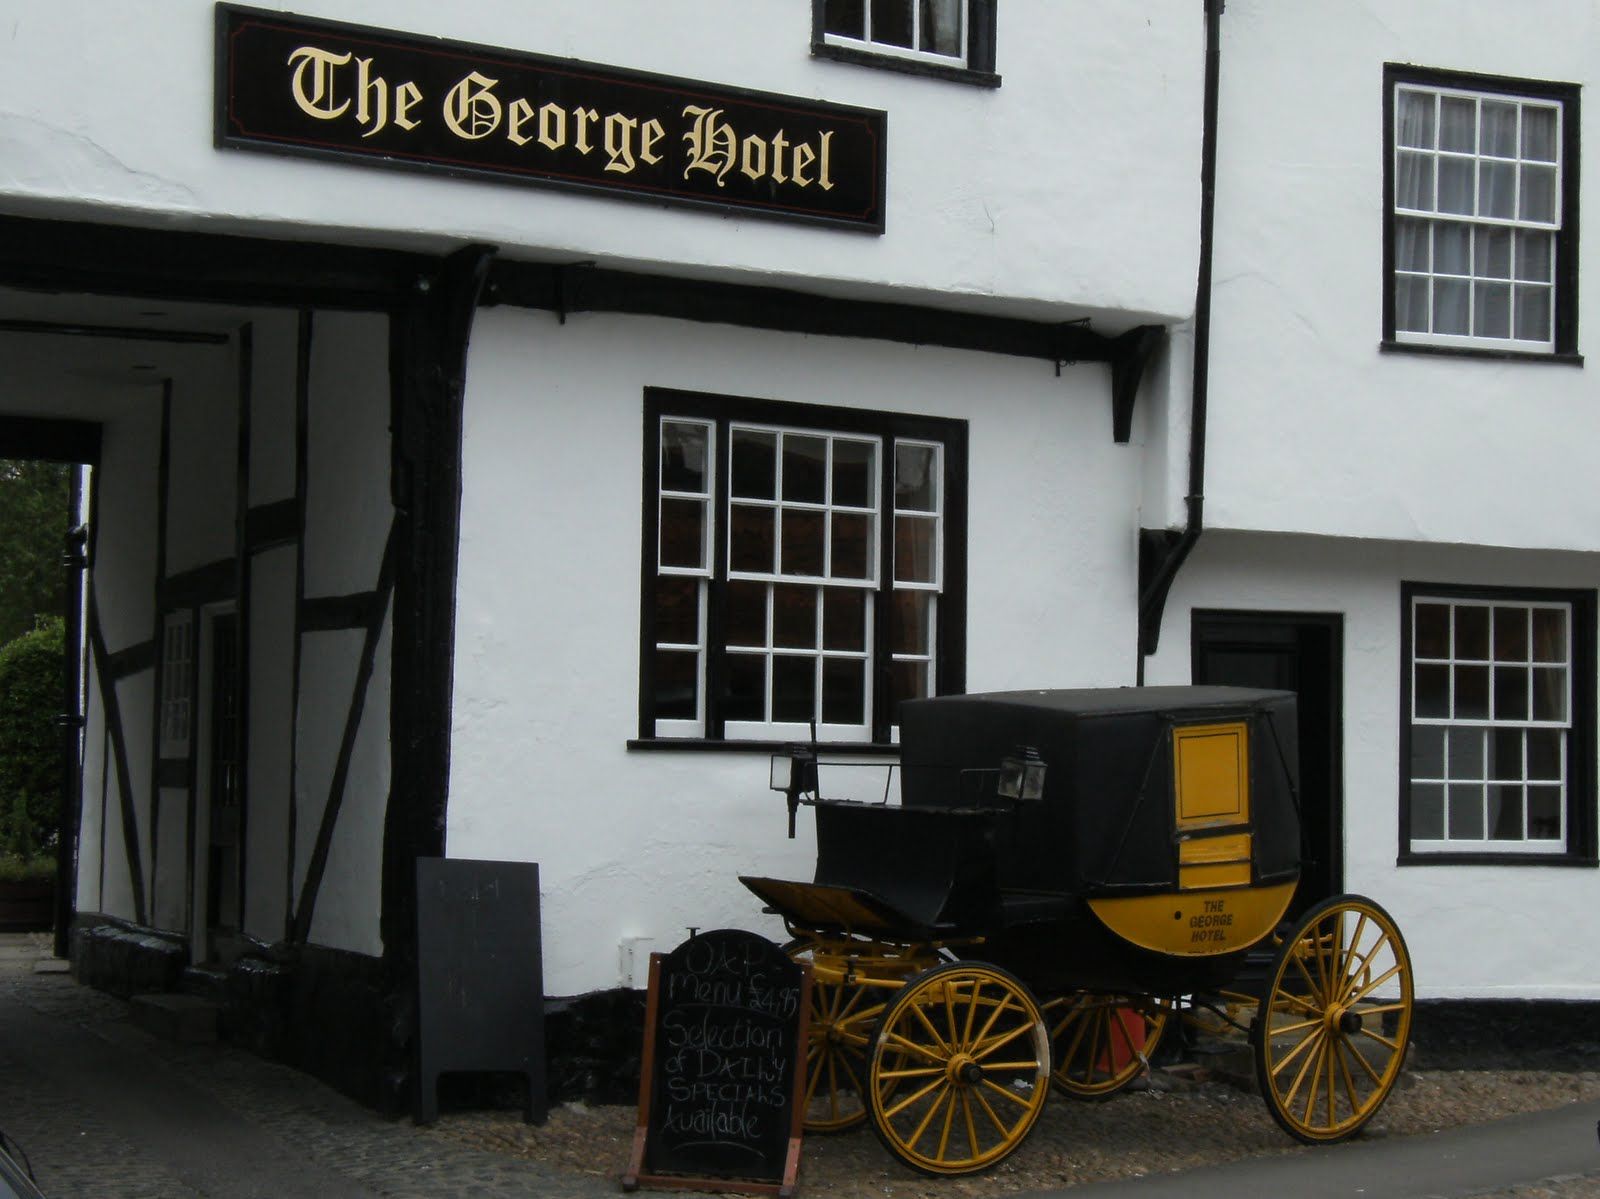 1006190009 The George Hotel, Dorchester-on-Thames